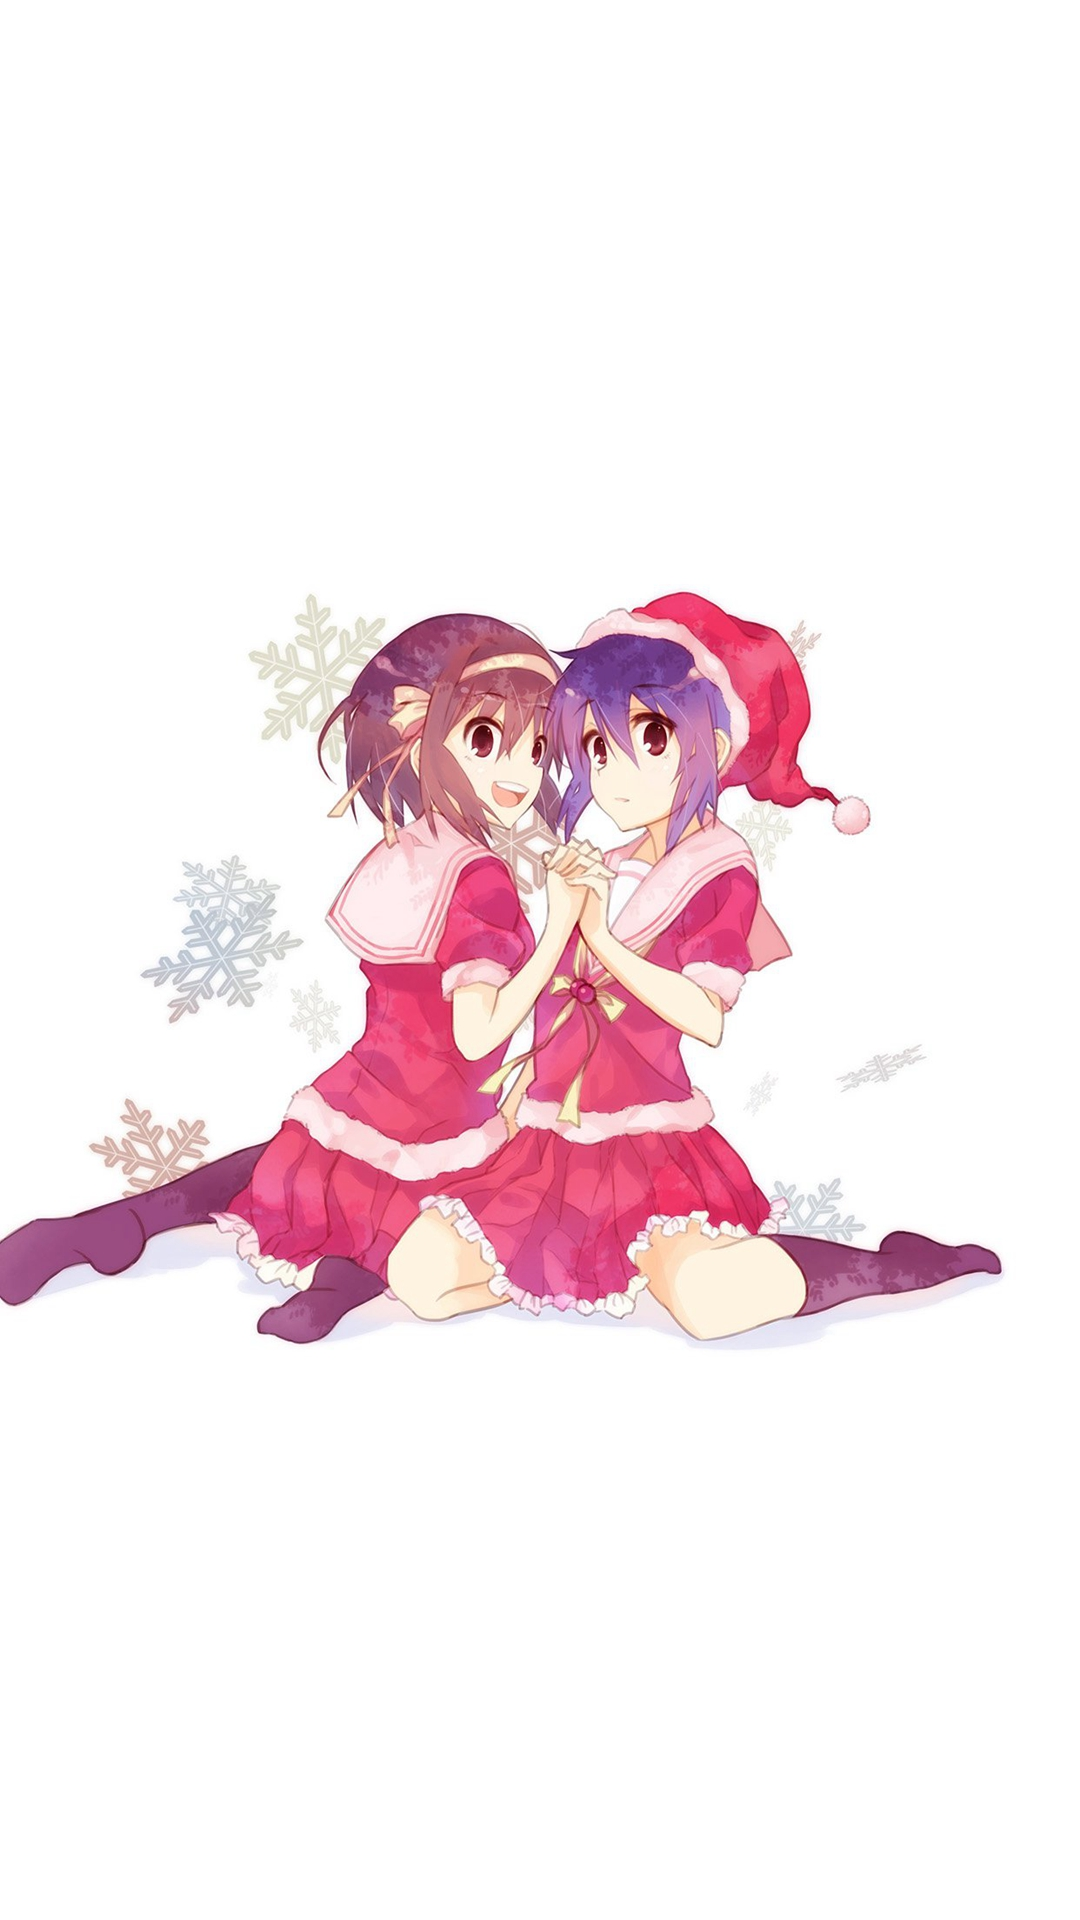 Cute Anime Chirstmas Art Illust Girls